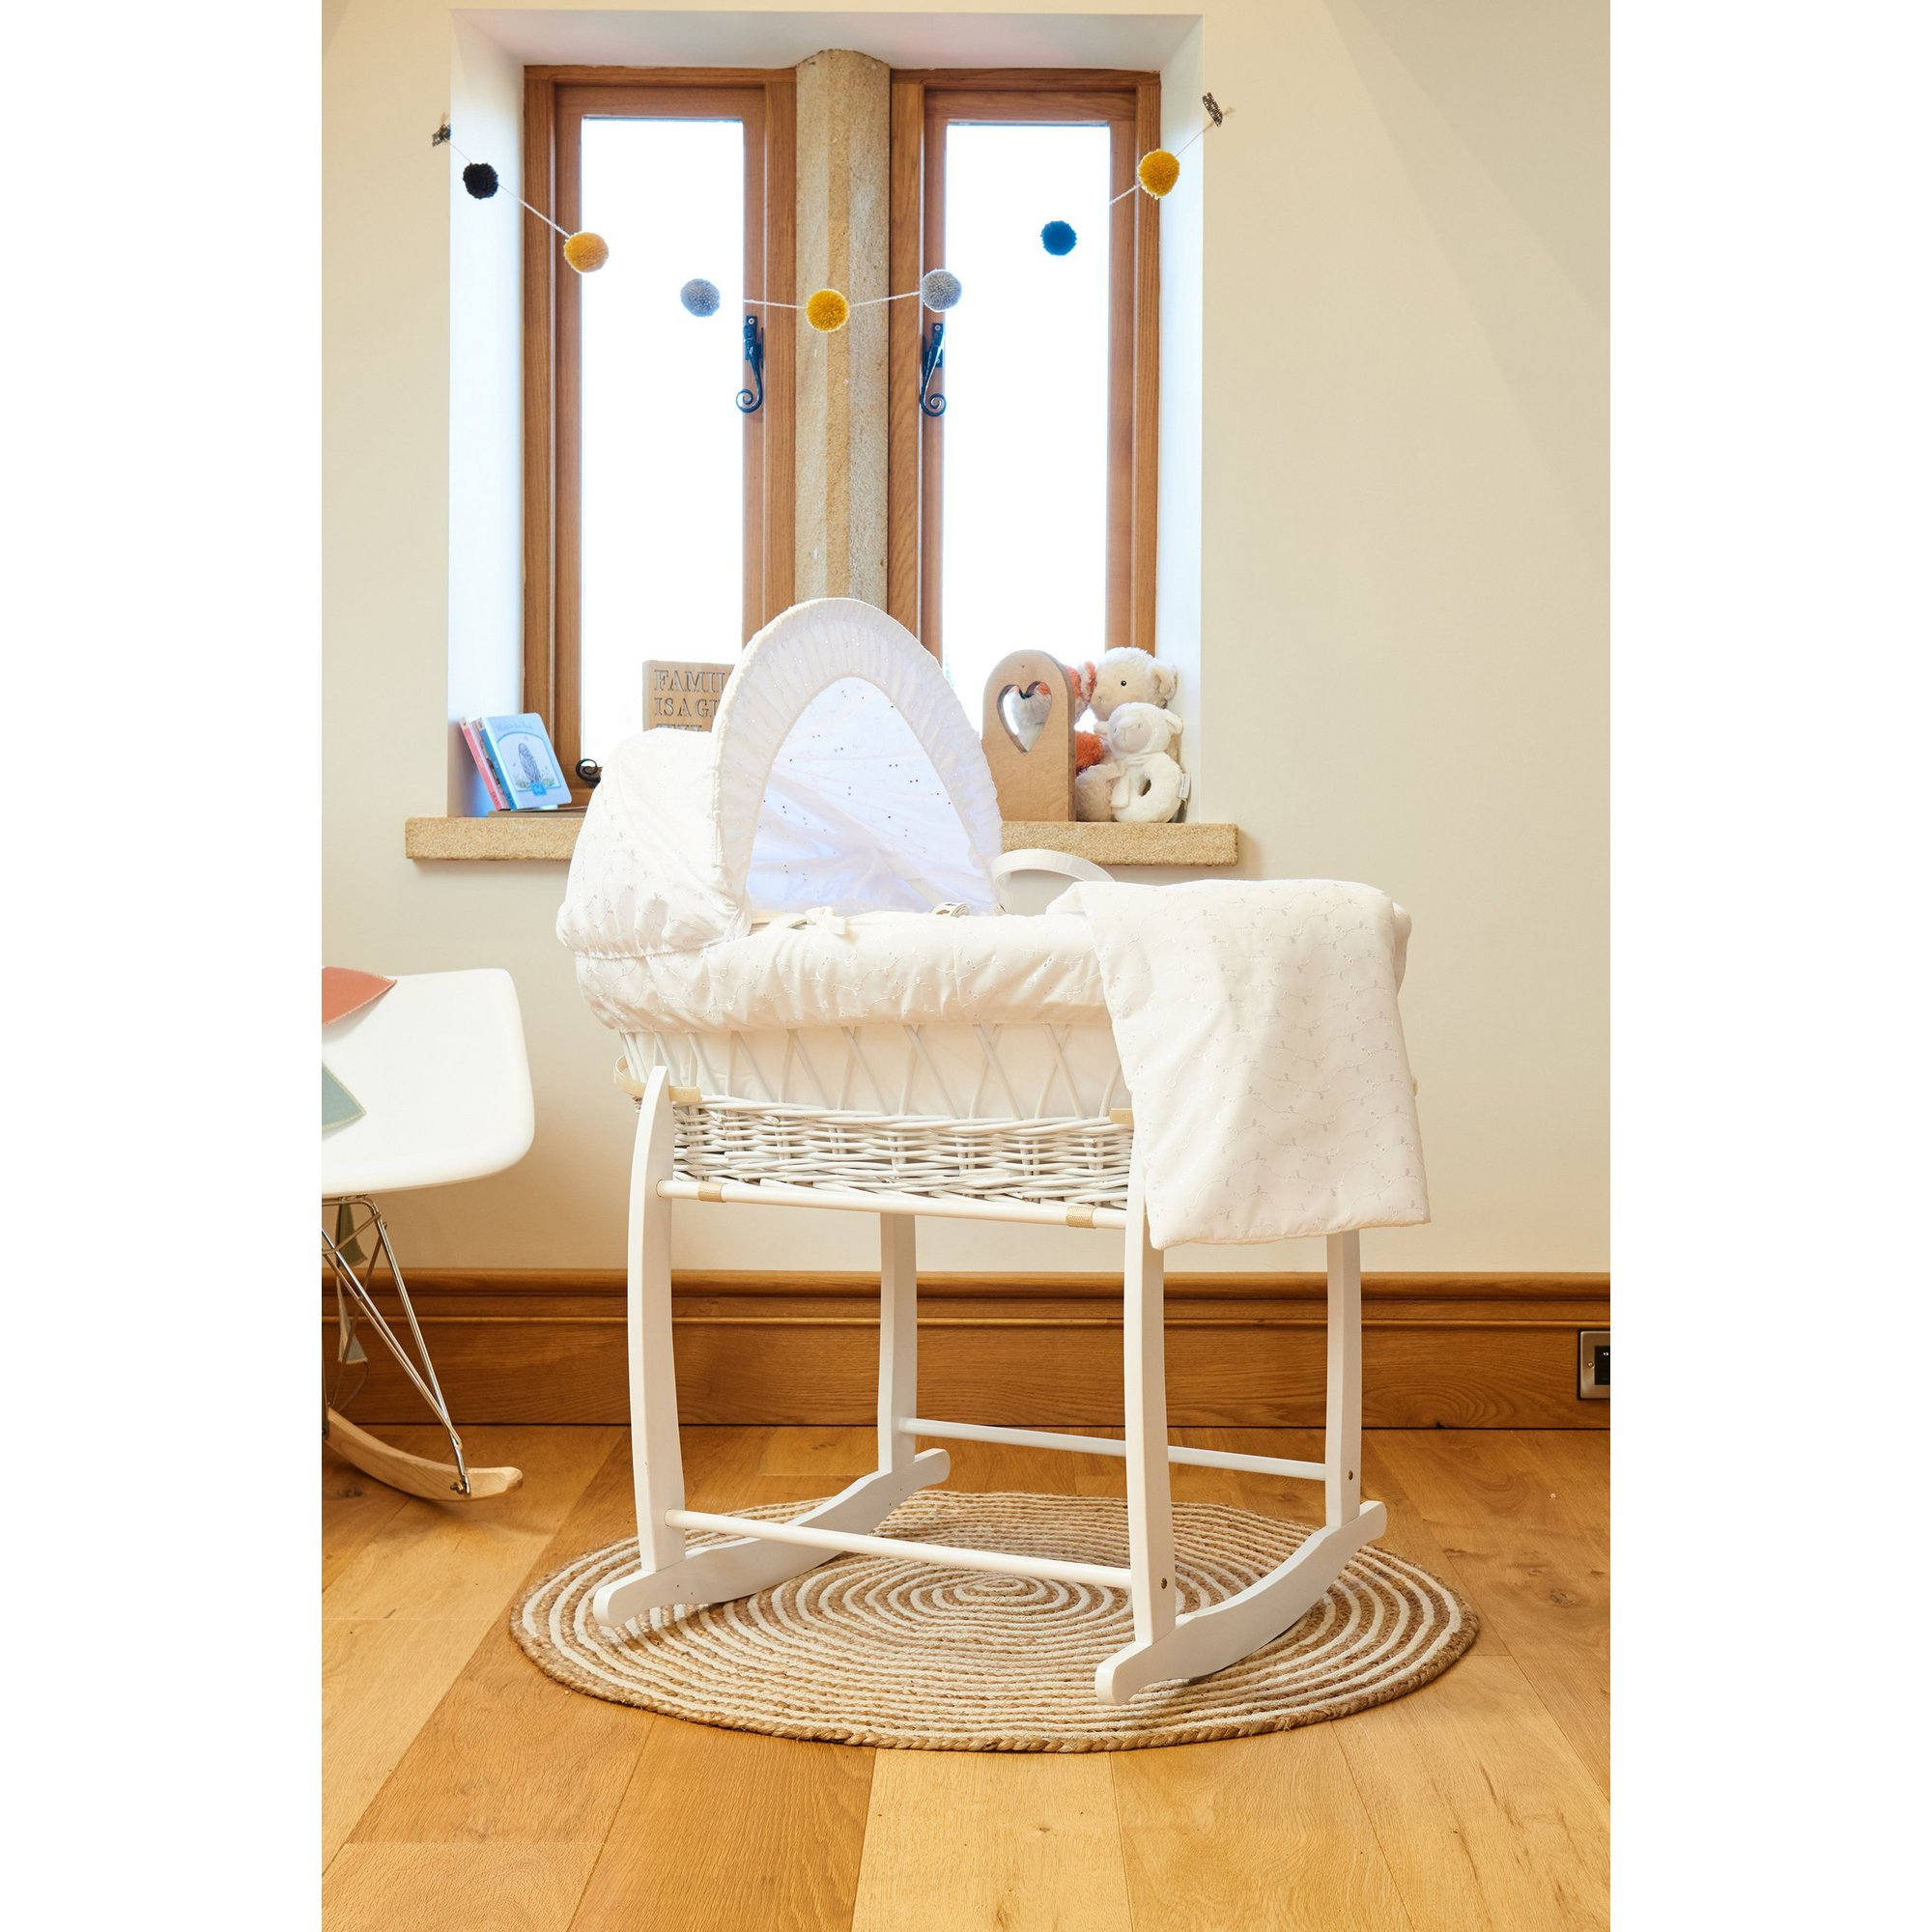 Image of Clair de Lune Broderie Anglaise White Wicker Moses Basket